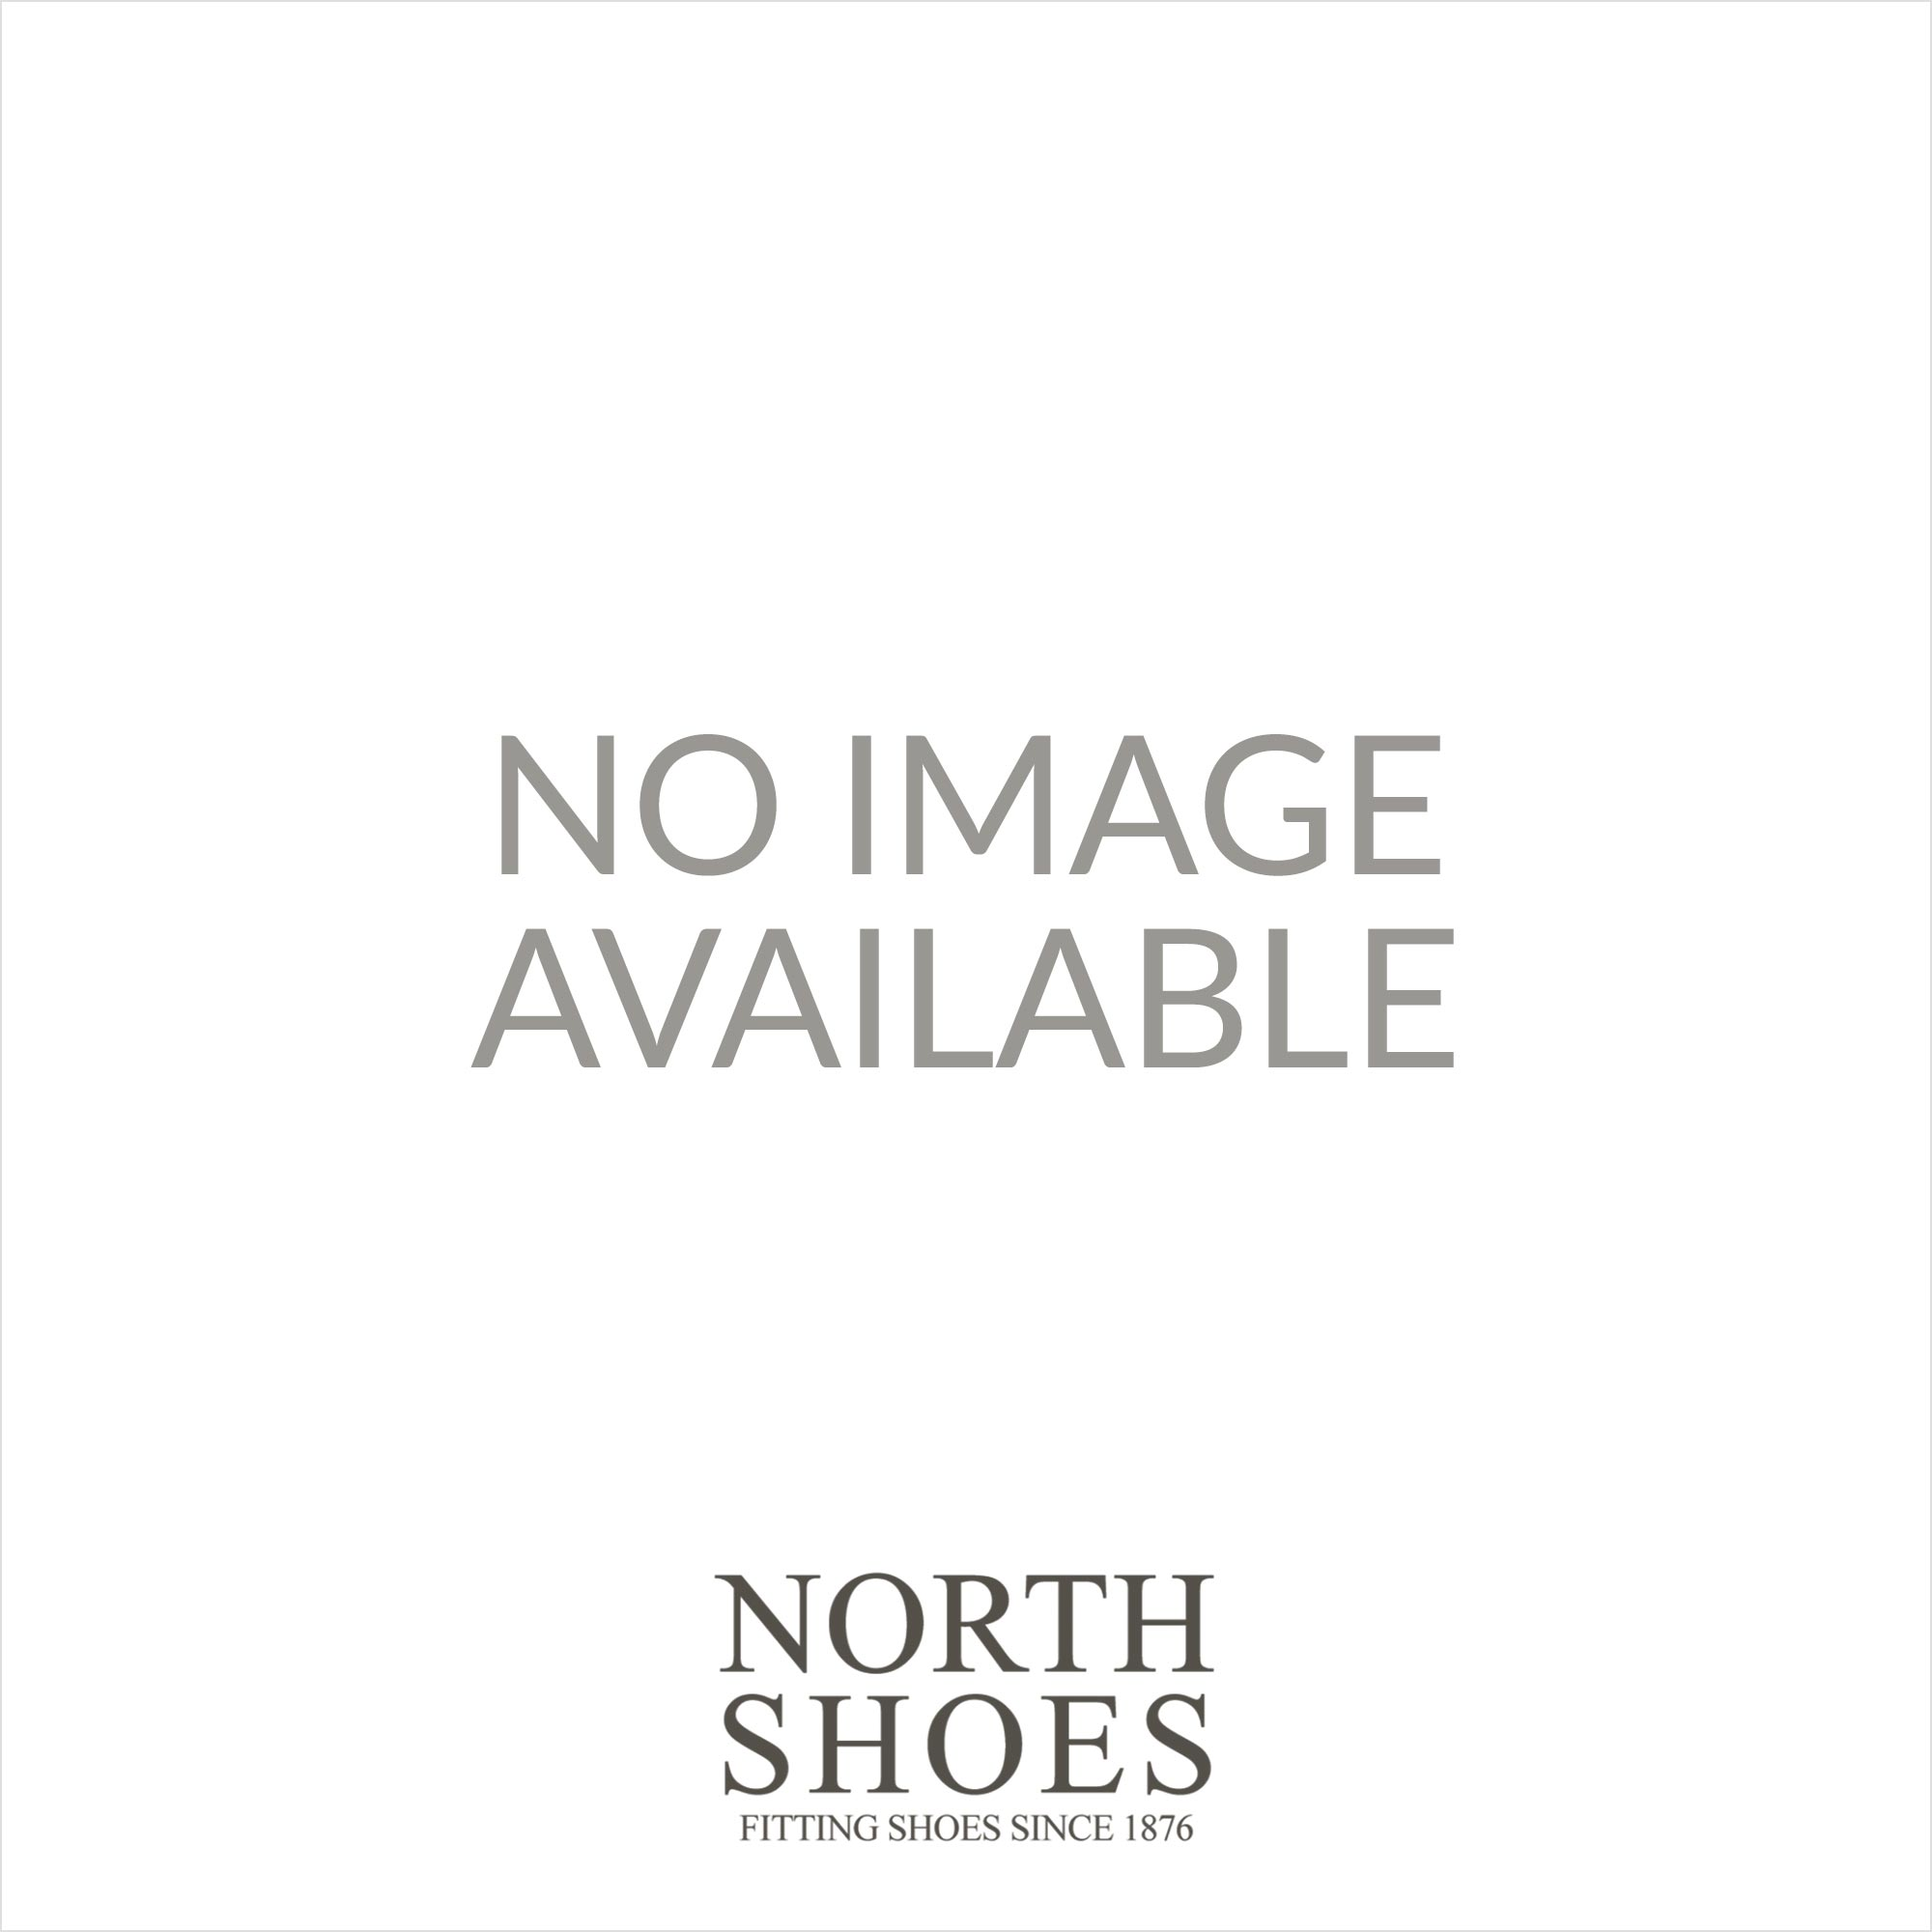 62470-14 Navy Womens Wedge Adjustable Strap Sandal